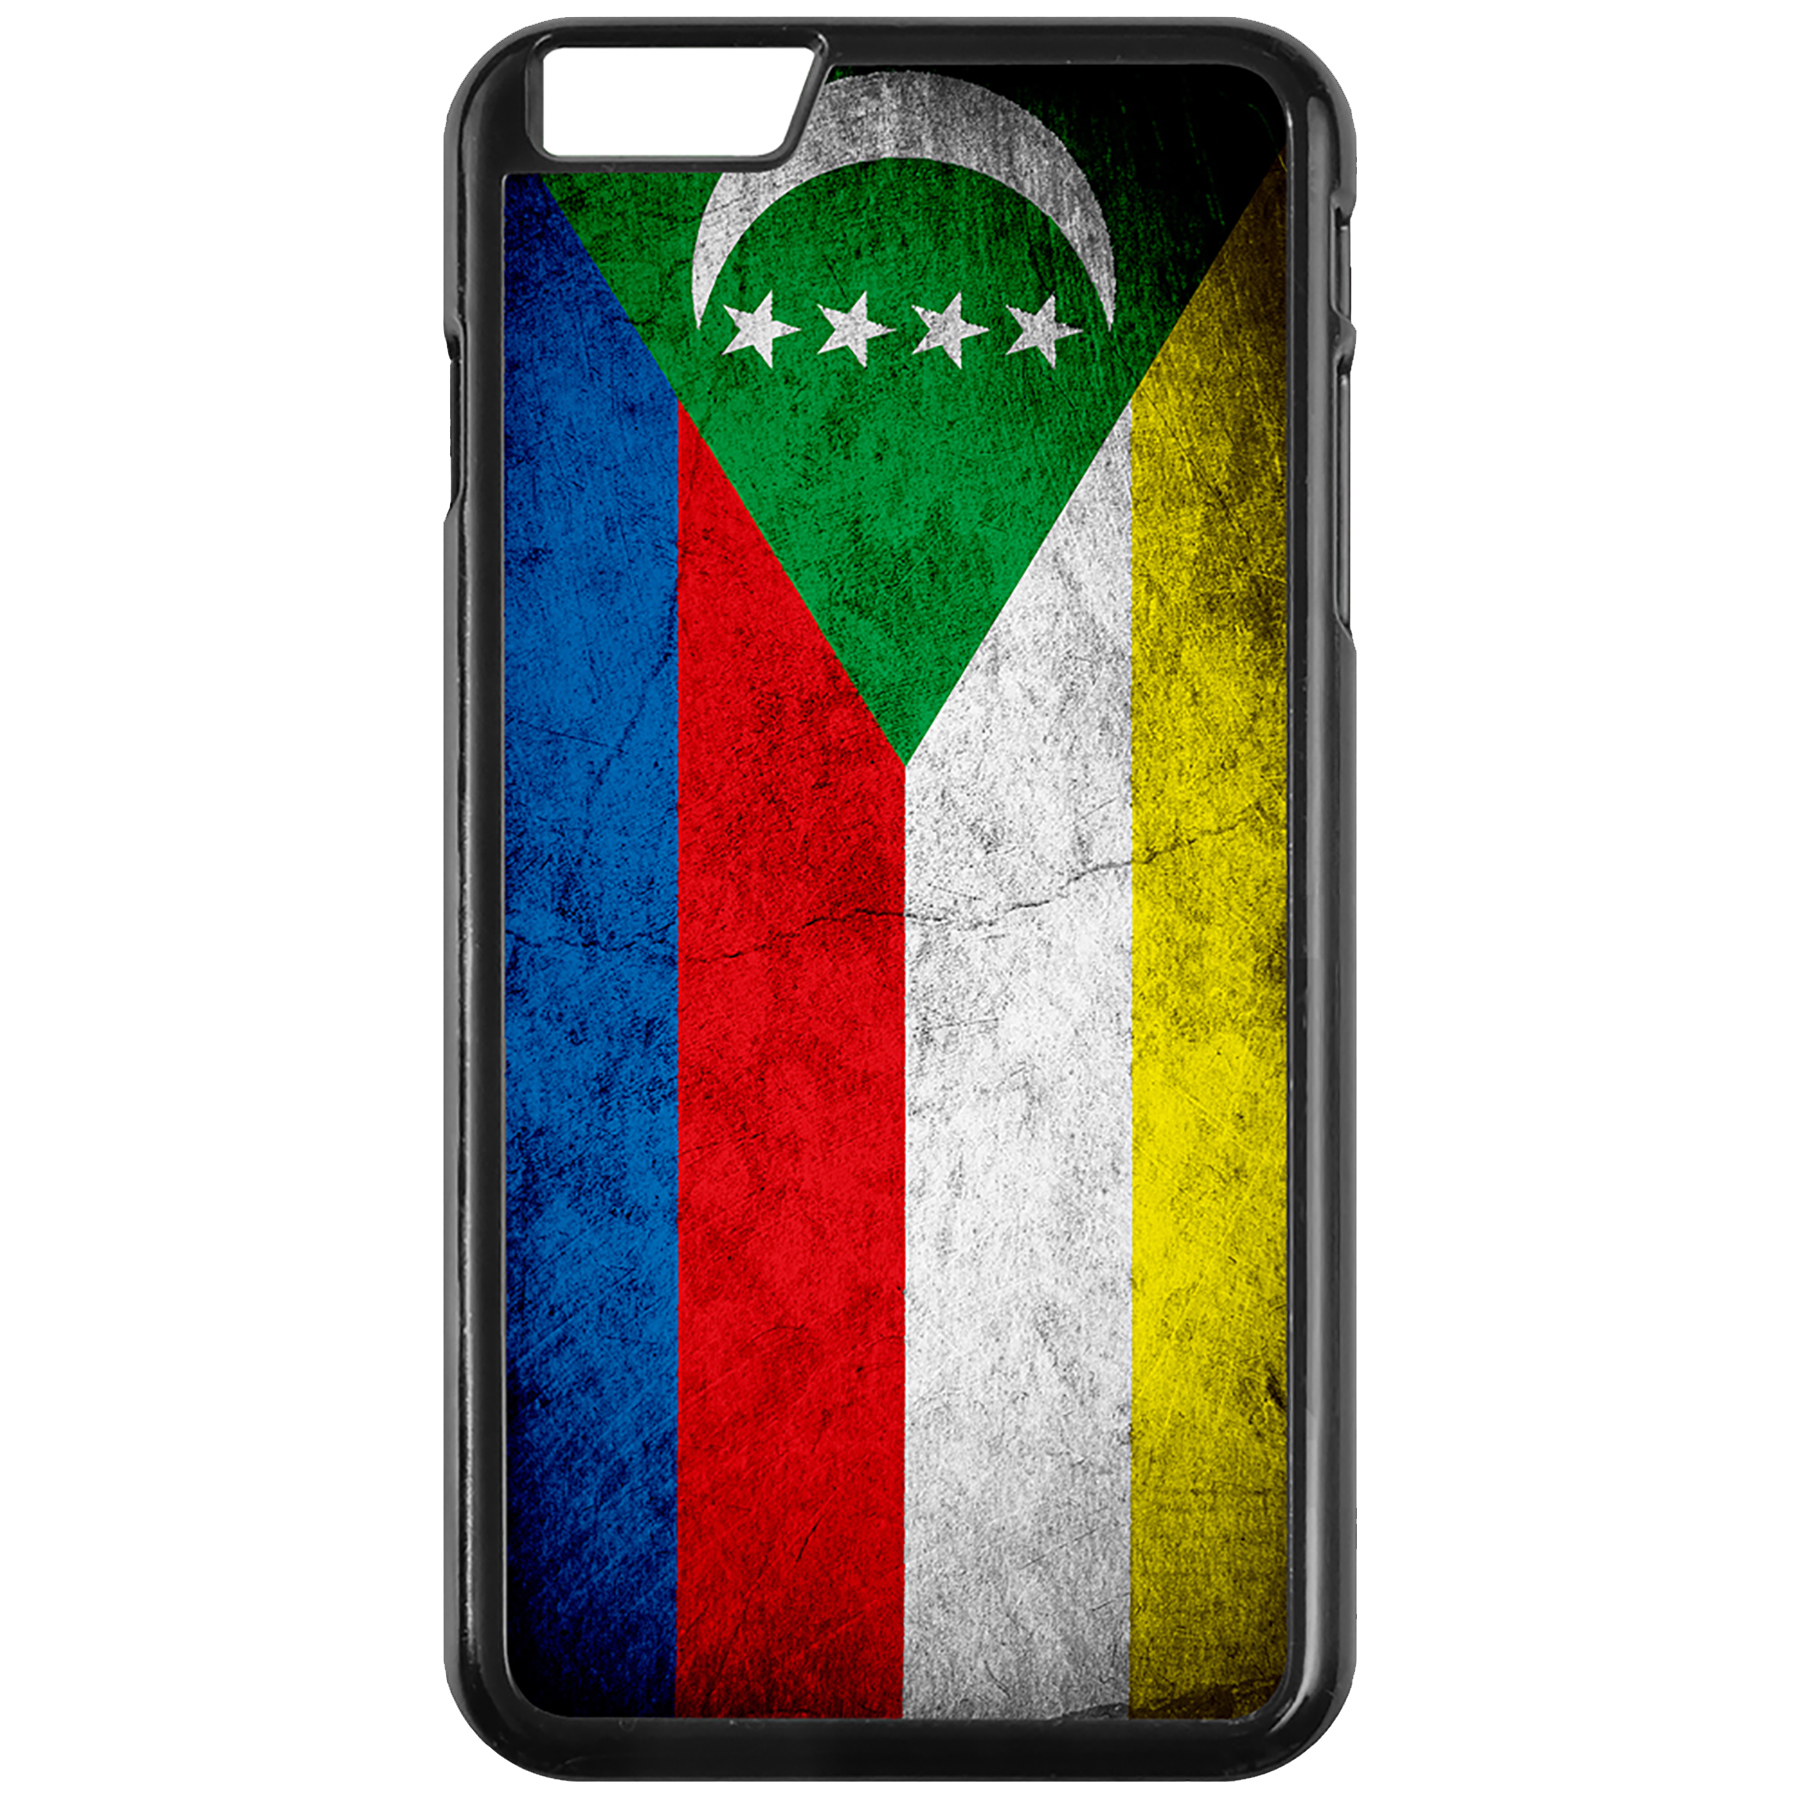 Apple-iPhone-Case-with-Flag-of-Comoros-Comorian-Many-Design-Options thumbnail 76